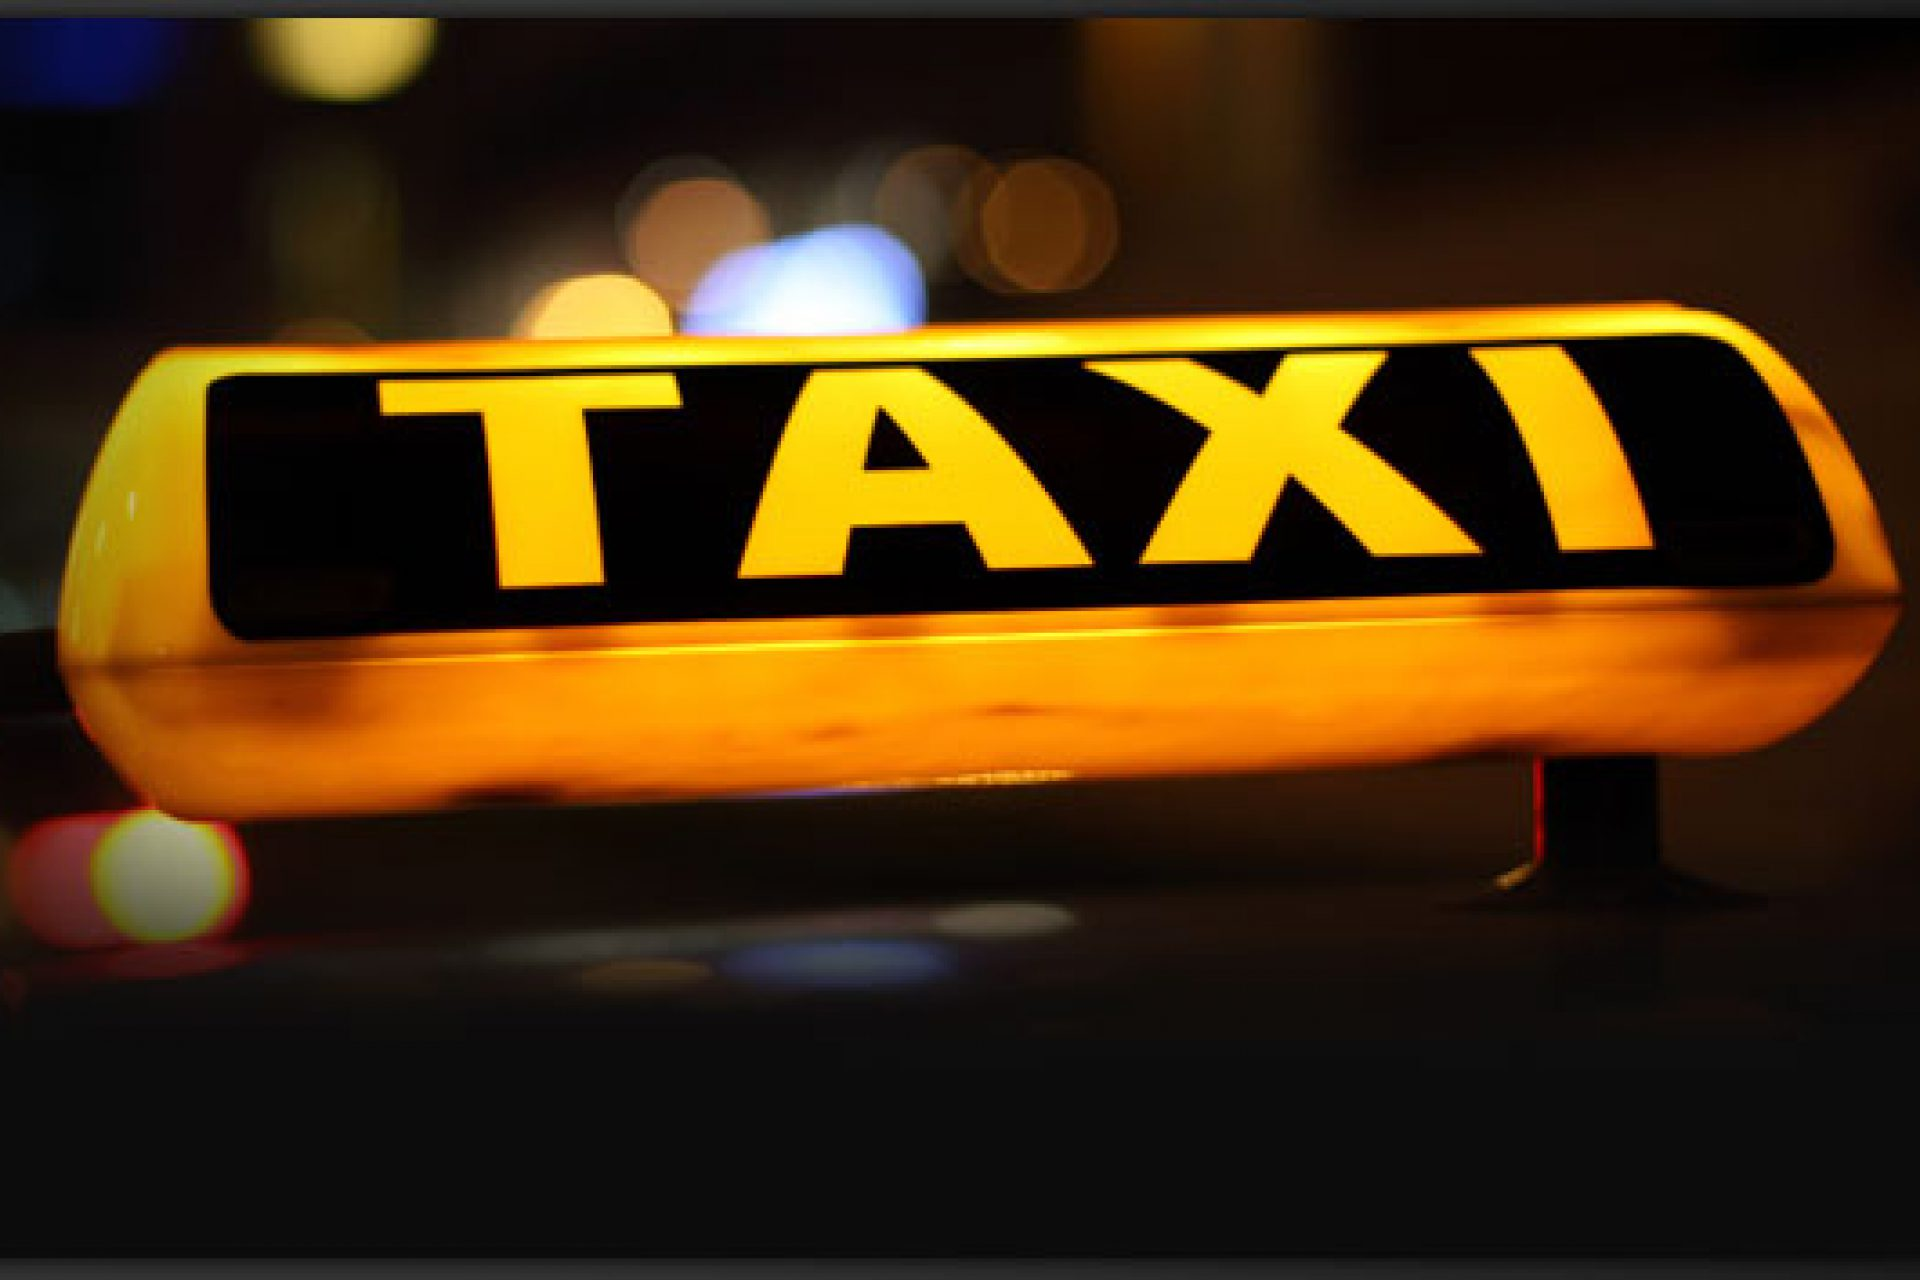 Taxi Service Background